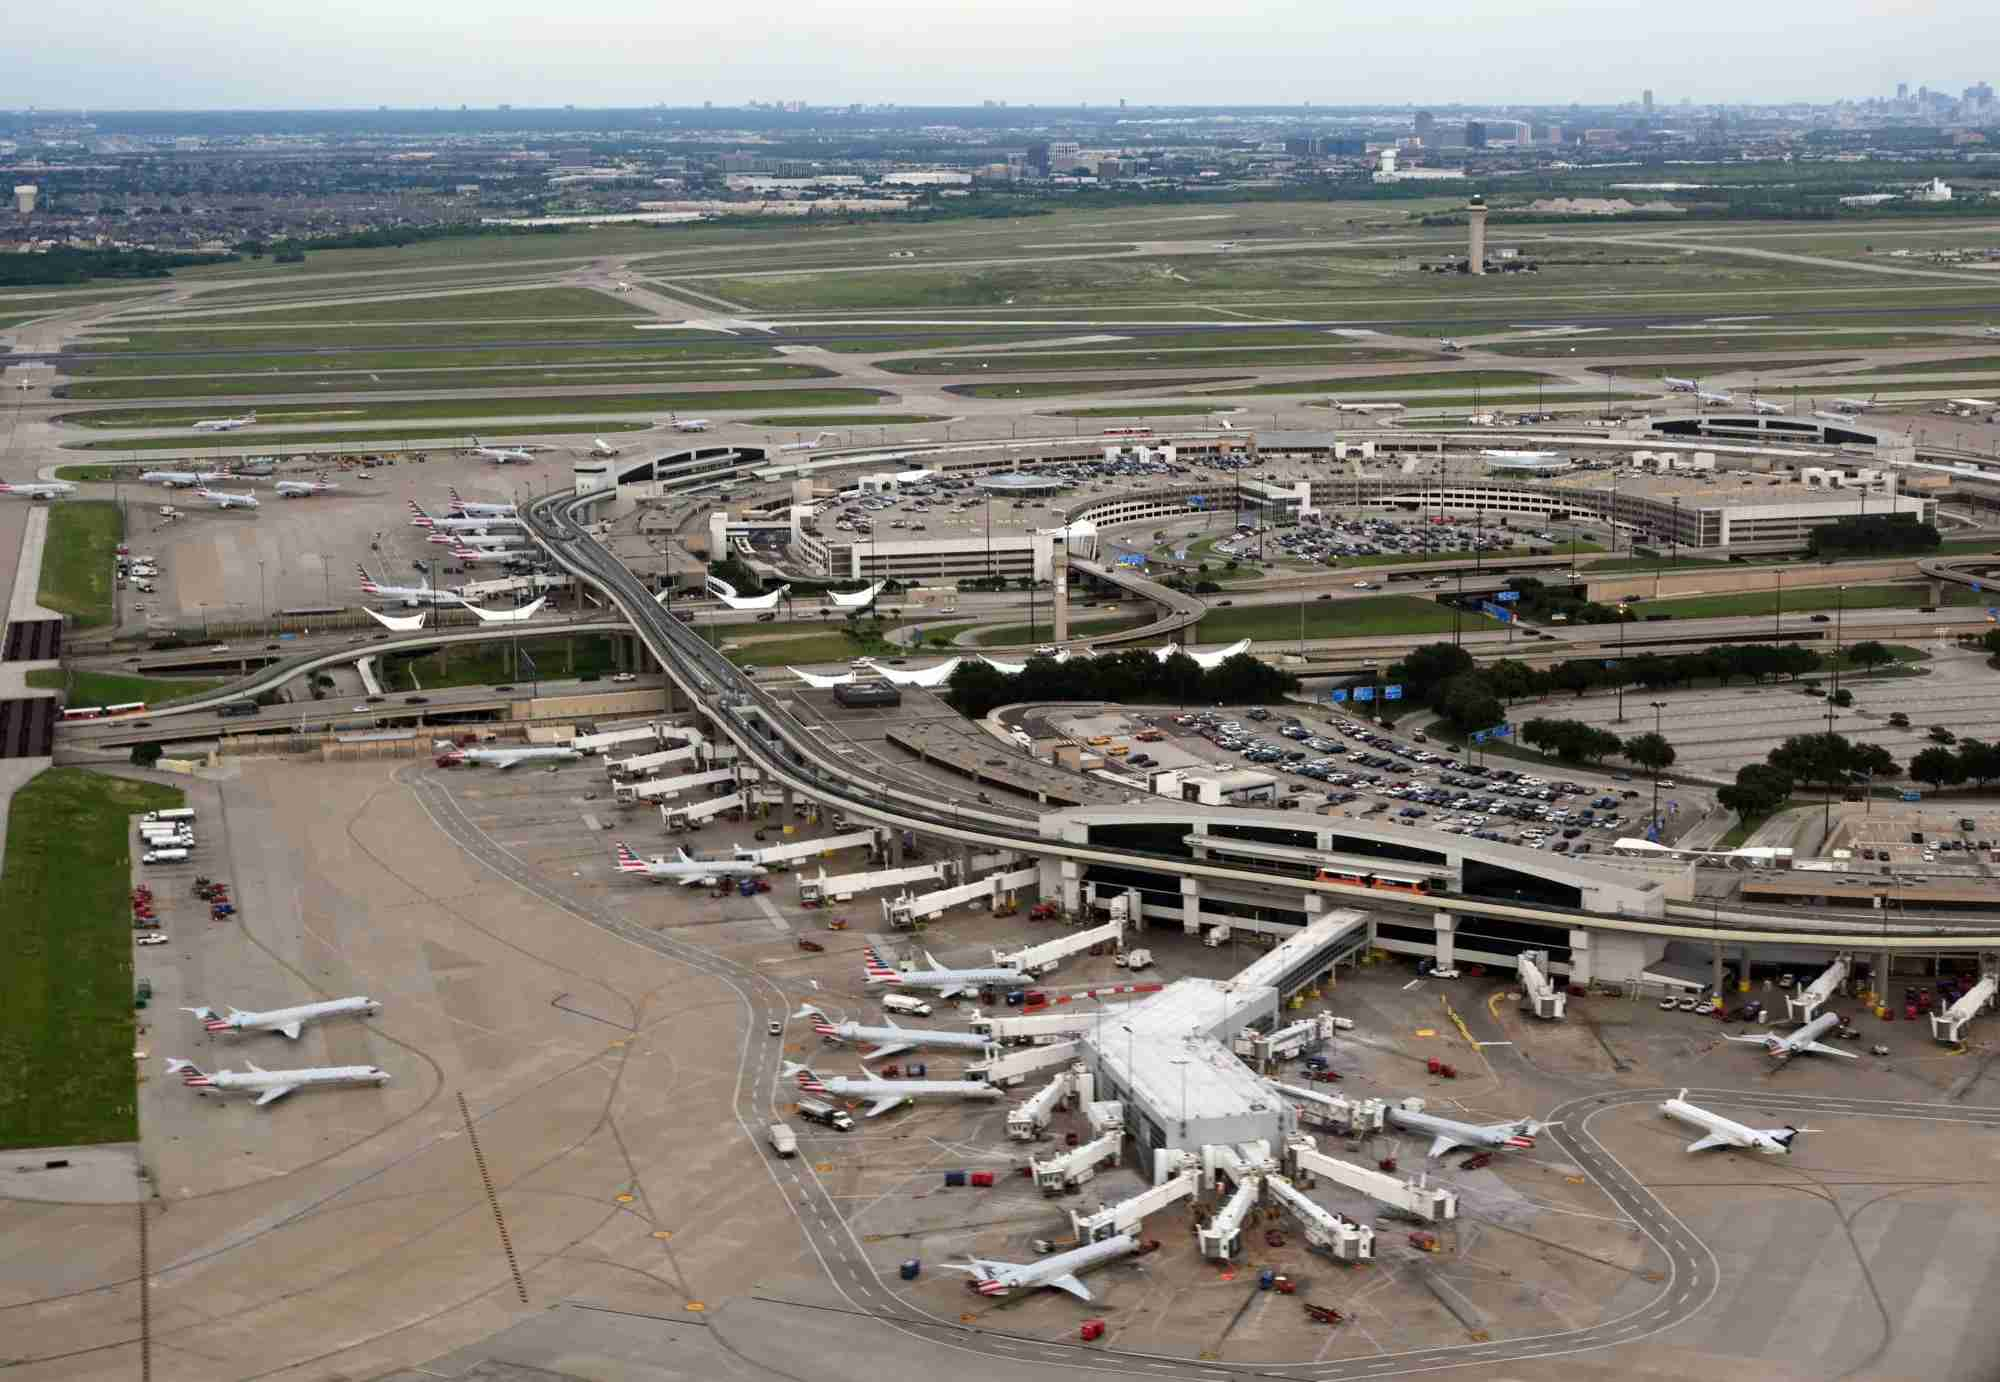 General view of Dallas/Fort Worth International Airport (DFW) on June 12, 2019, (Photo by Daniel SLIM / AFP) (Photo credit should read DANIEL SLIM/AFP/Getty Images)